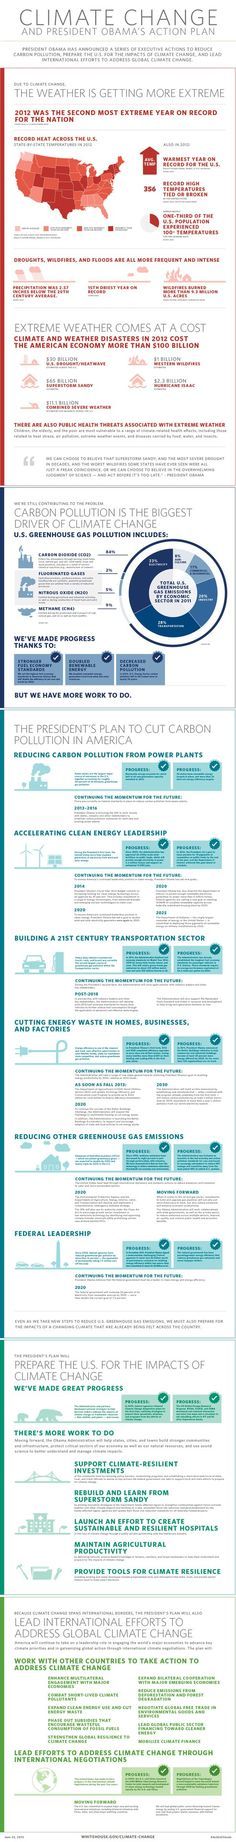 President Obama's Climate Change Plan (Infographic)